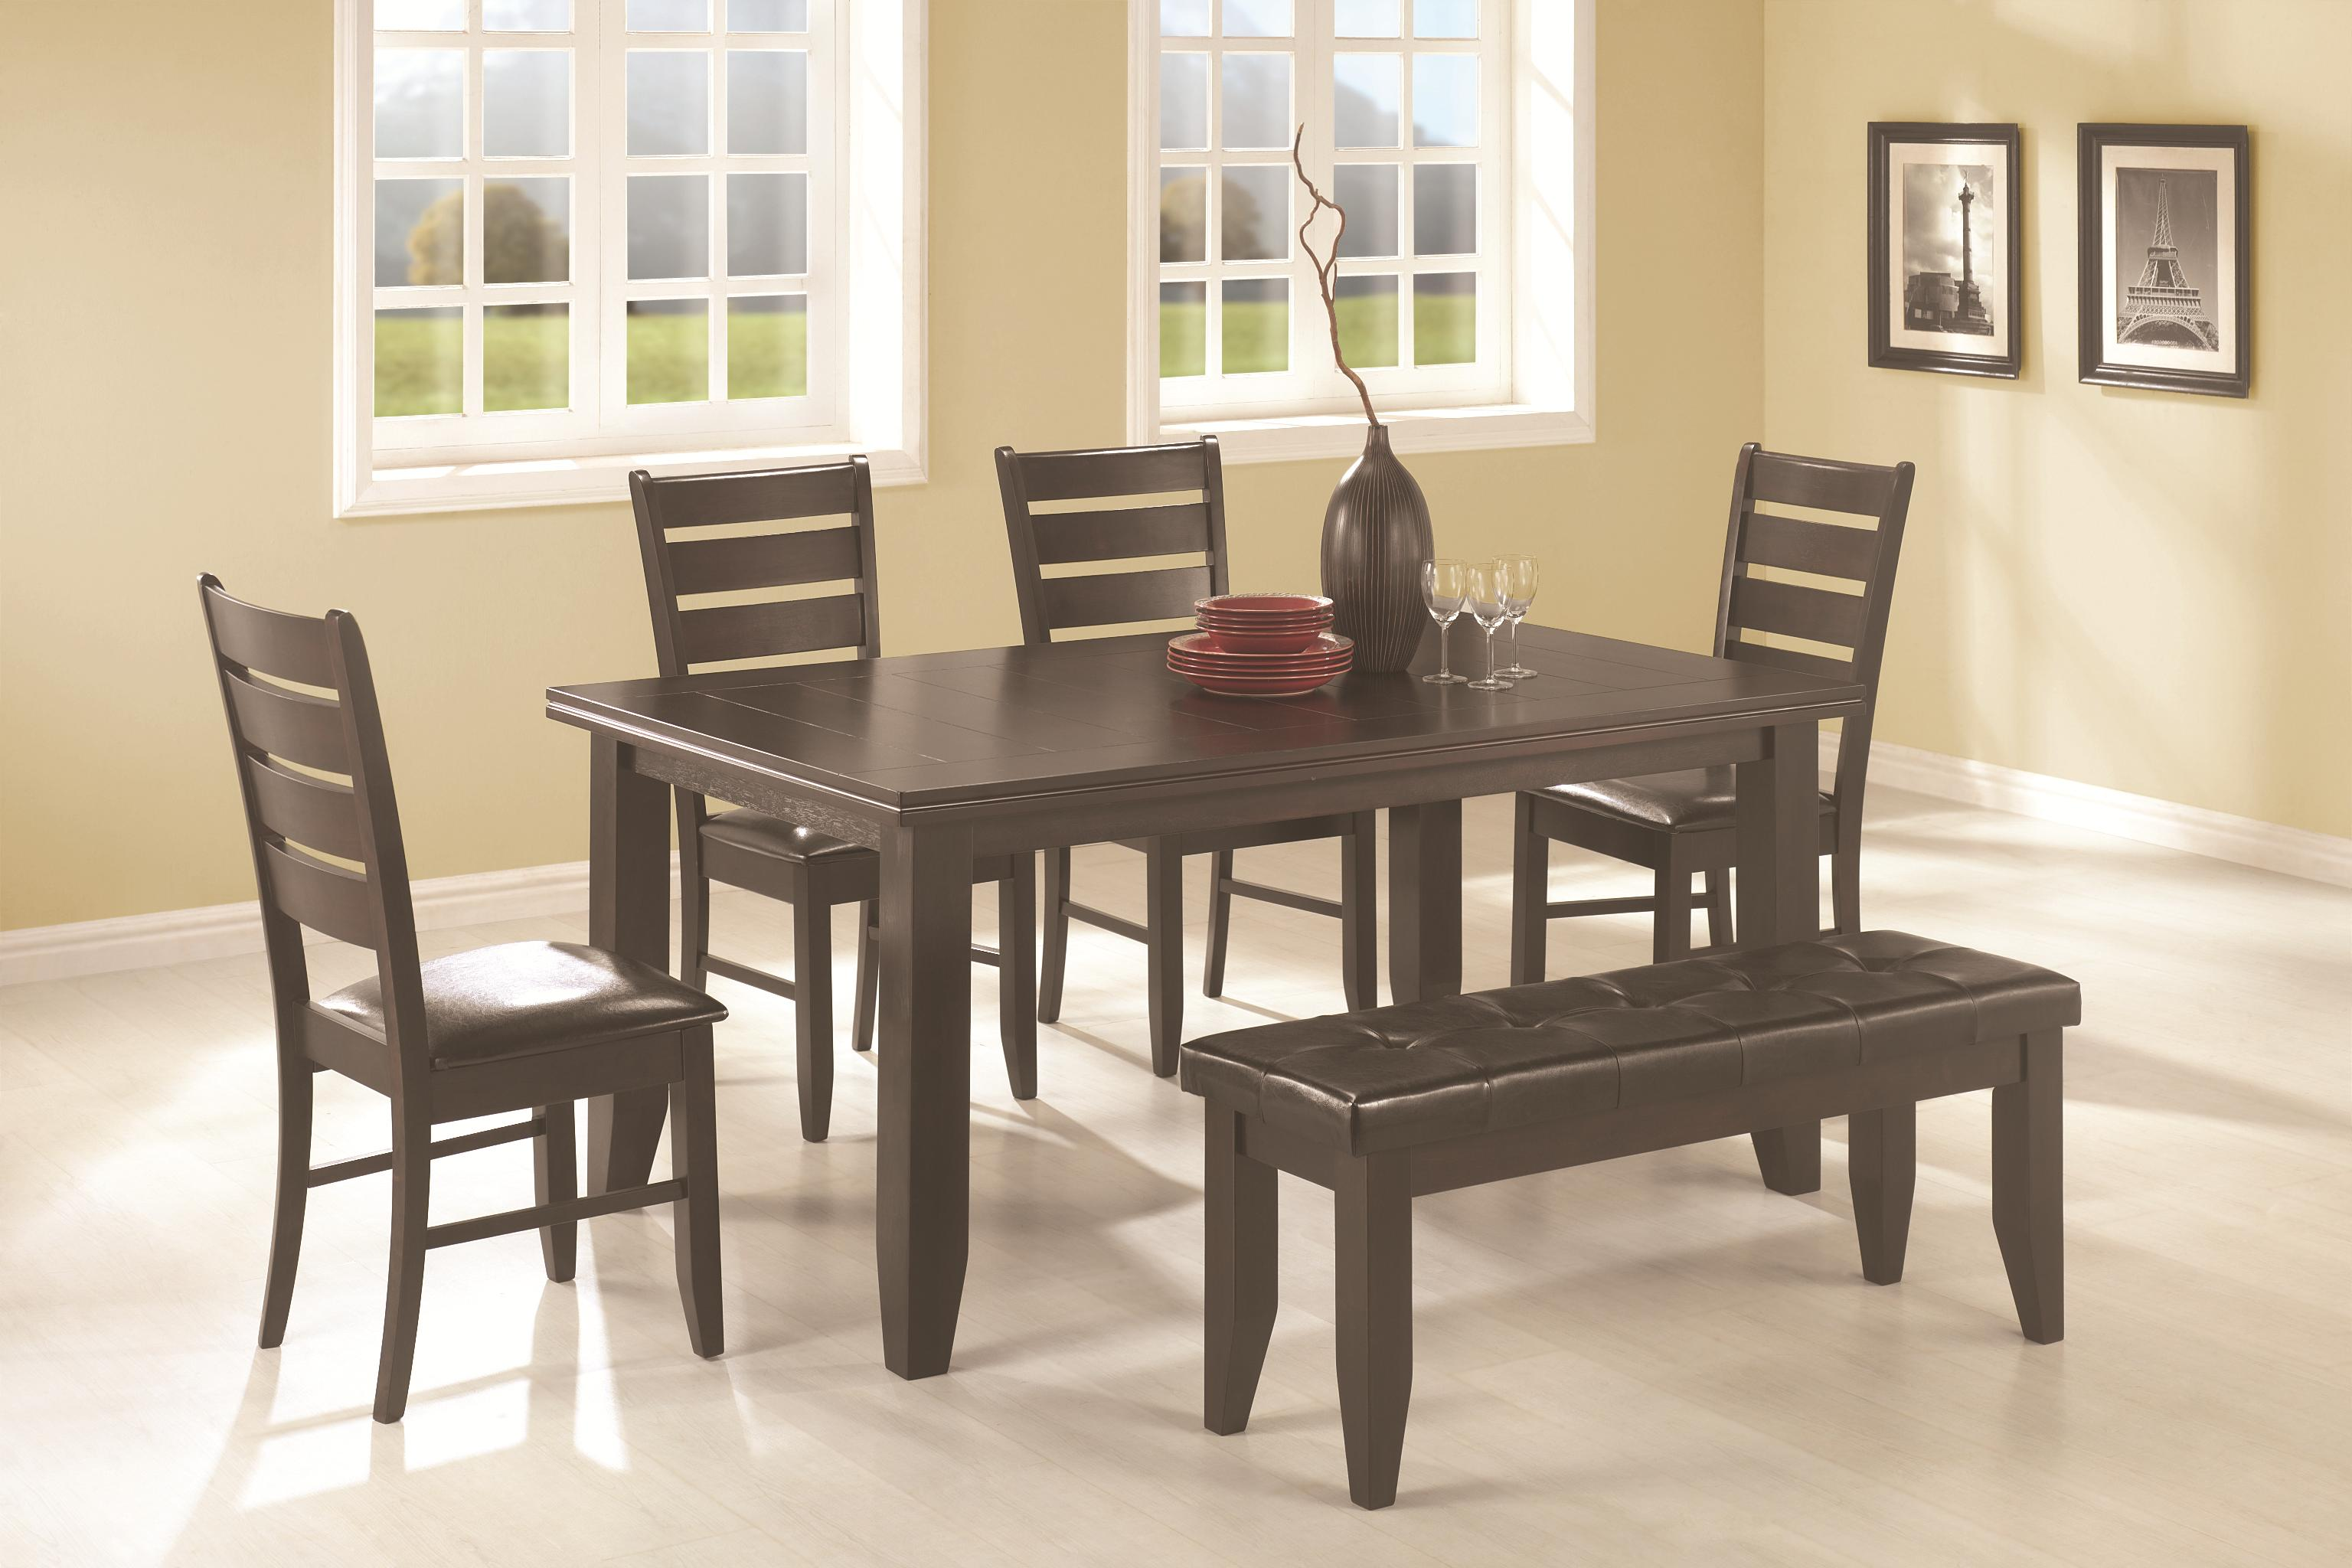 Bon Coaster Page 6 Piece Dining Set   Item Number: 102721+4x2+3